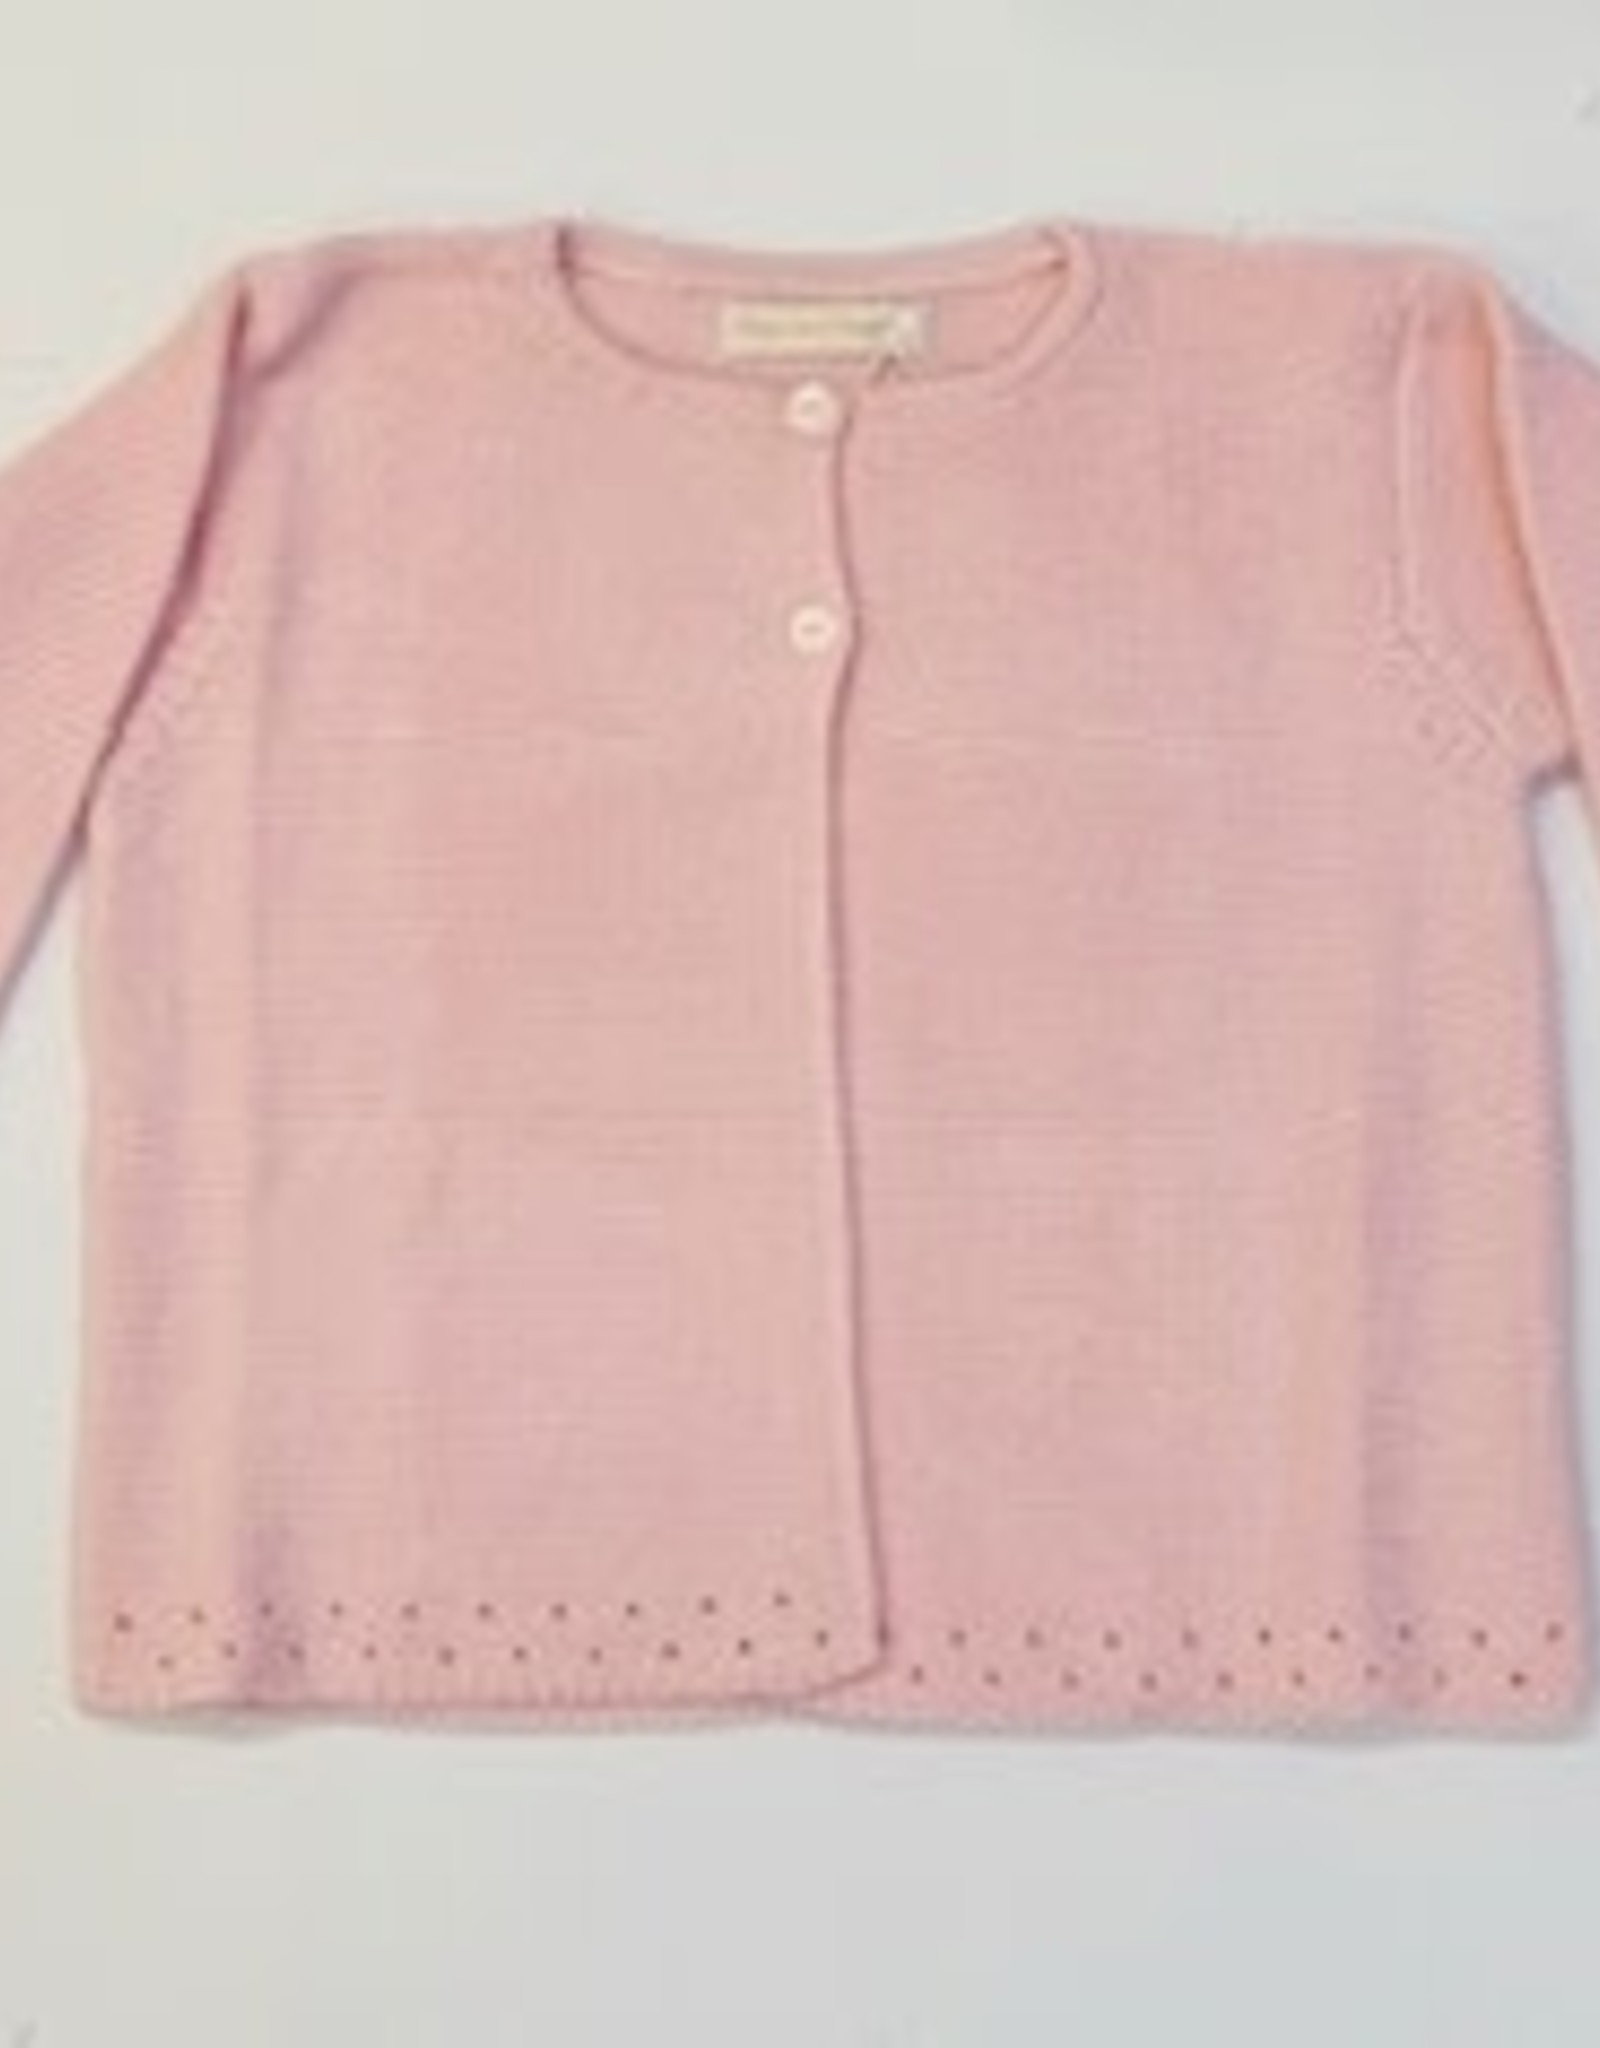 Baby Club Chic Baby Club Chic Knitted Cardigan - Pink